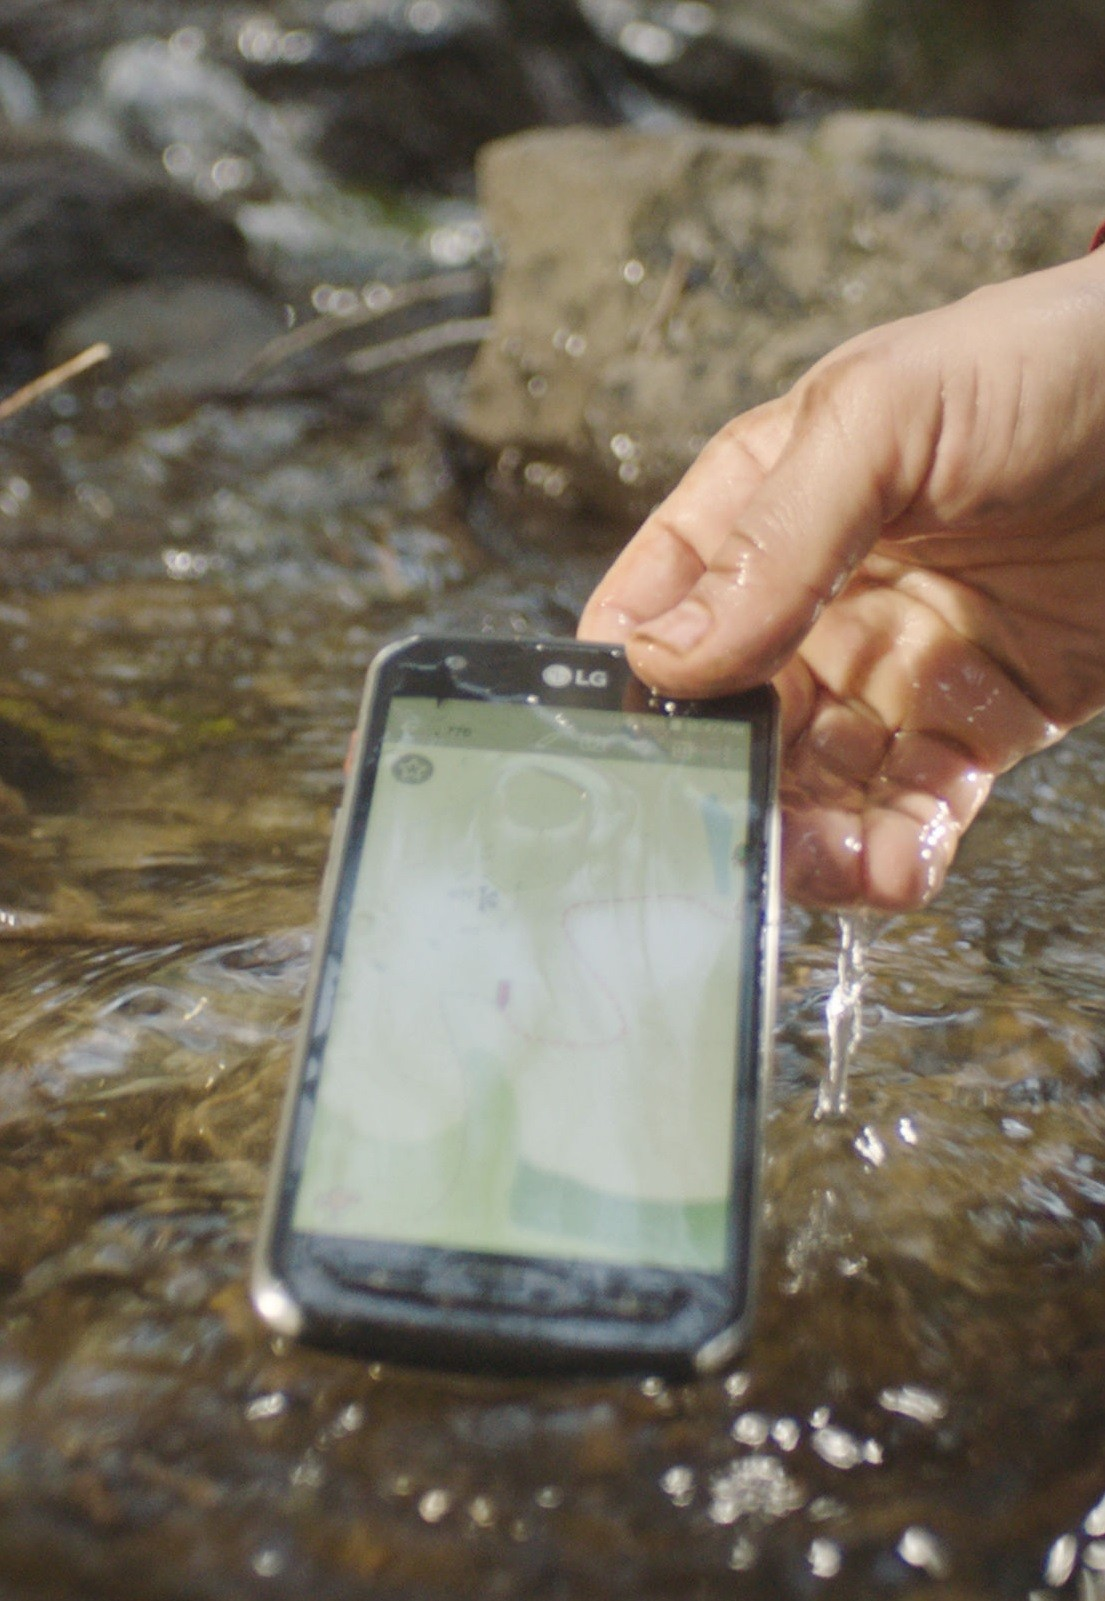 A person pulls the LG X venture, which has IP68 rating for water and dust resistance, out of the water